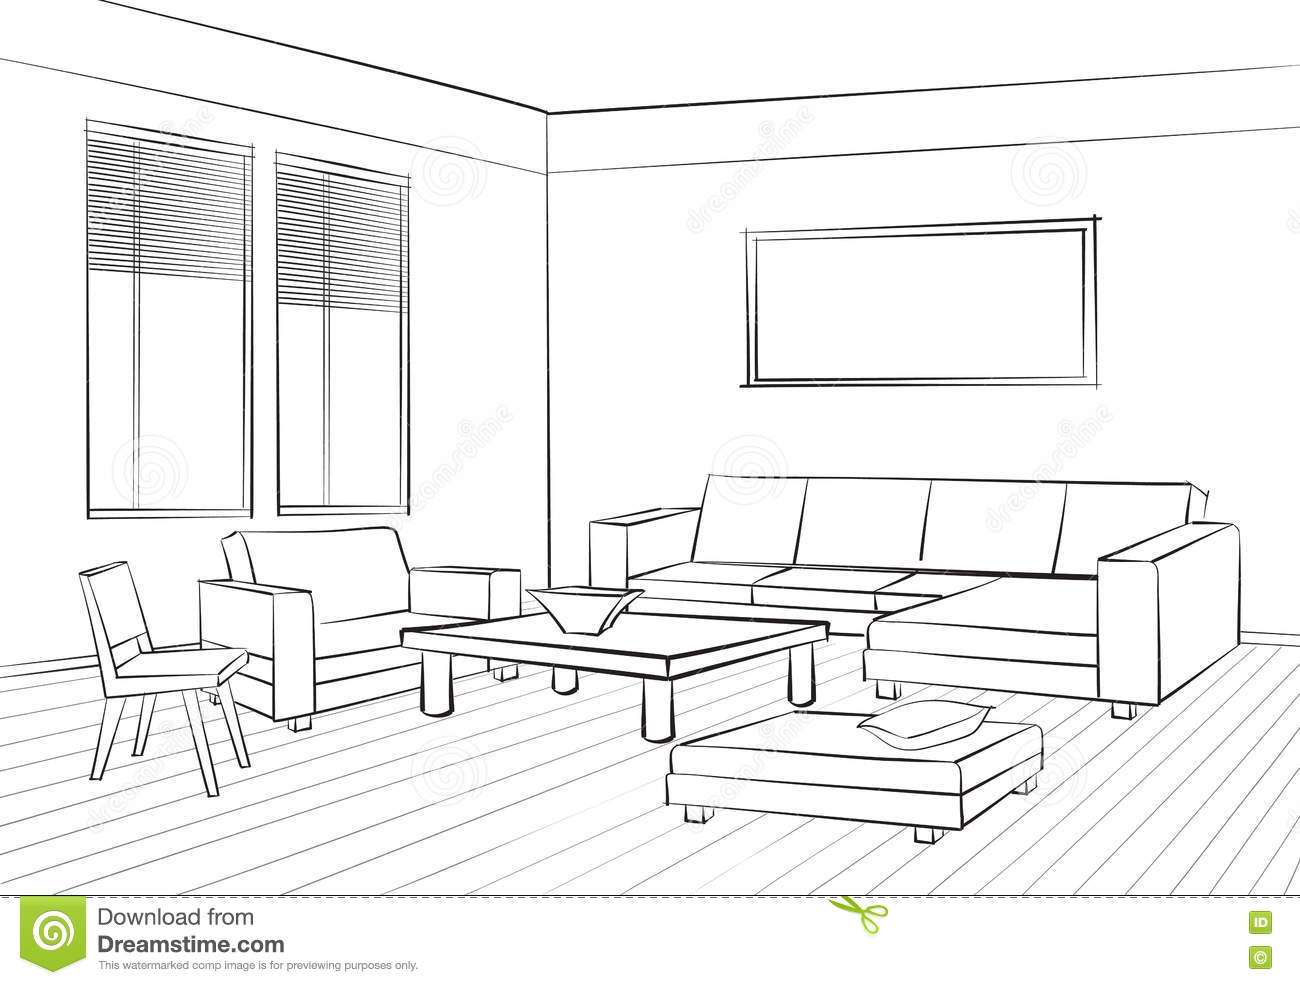 Living room design room interior sketch interior furniture for Drawing room bed design